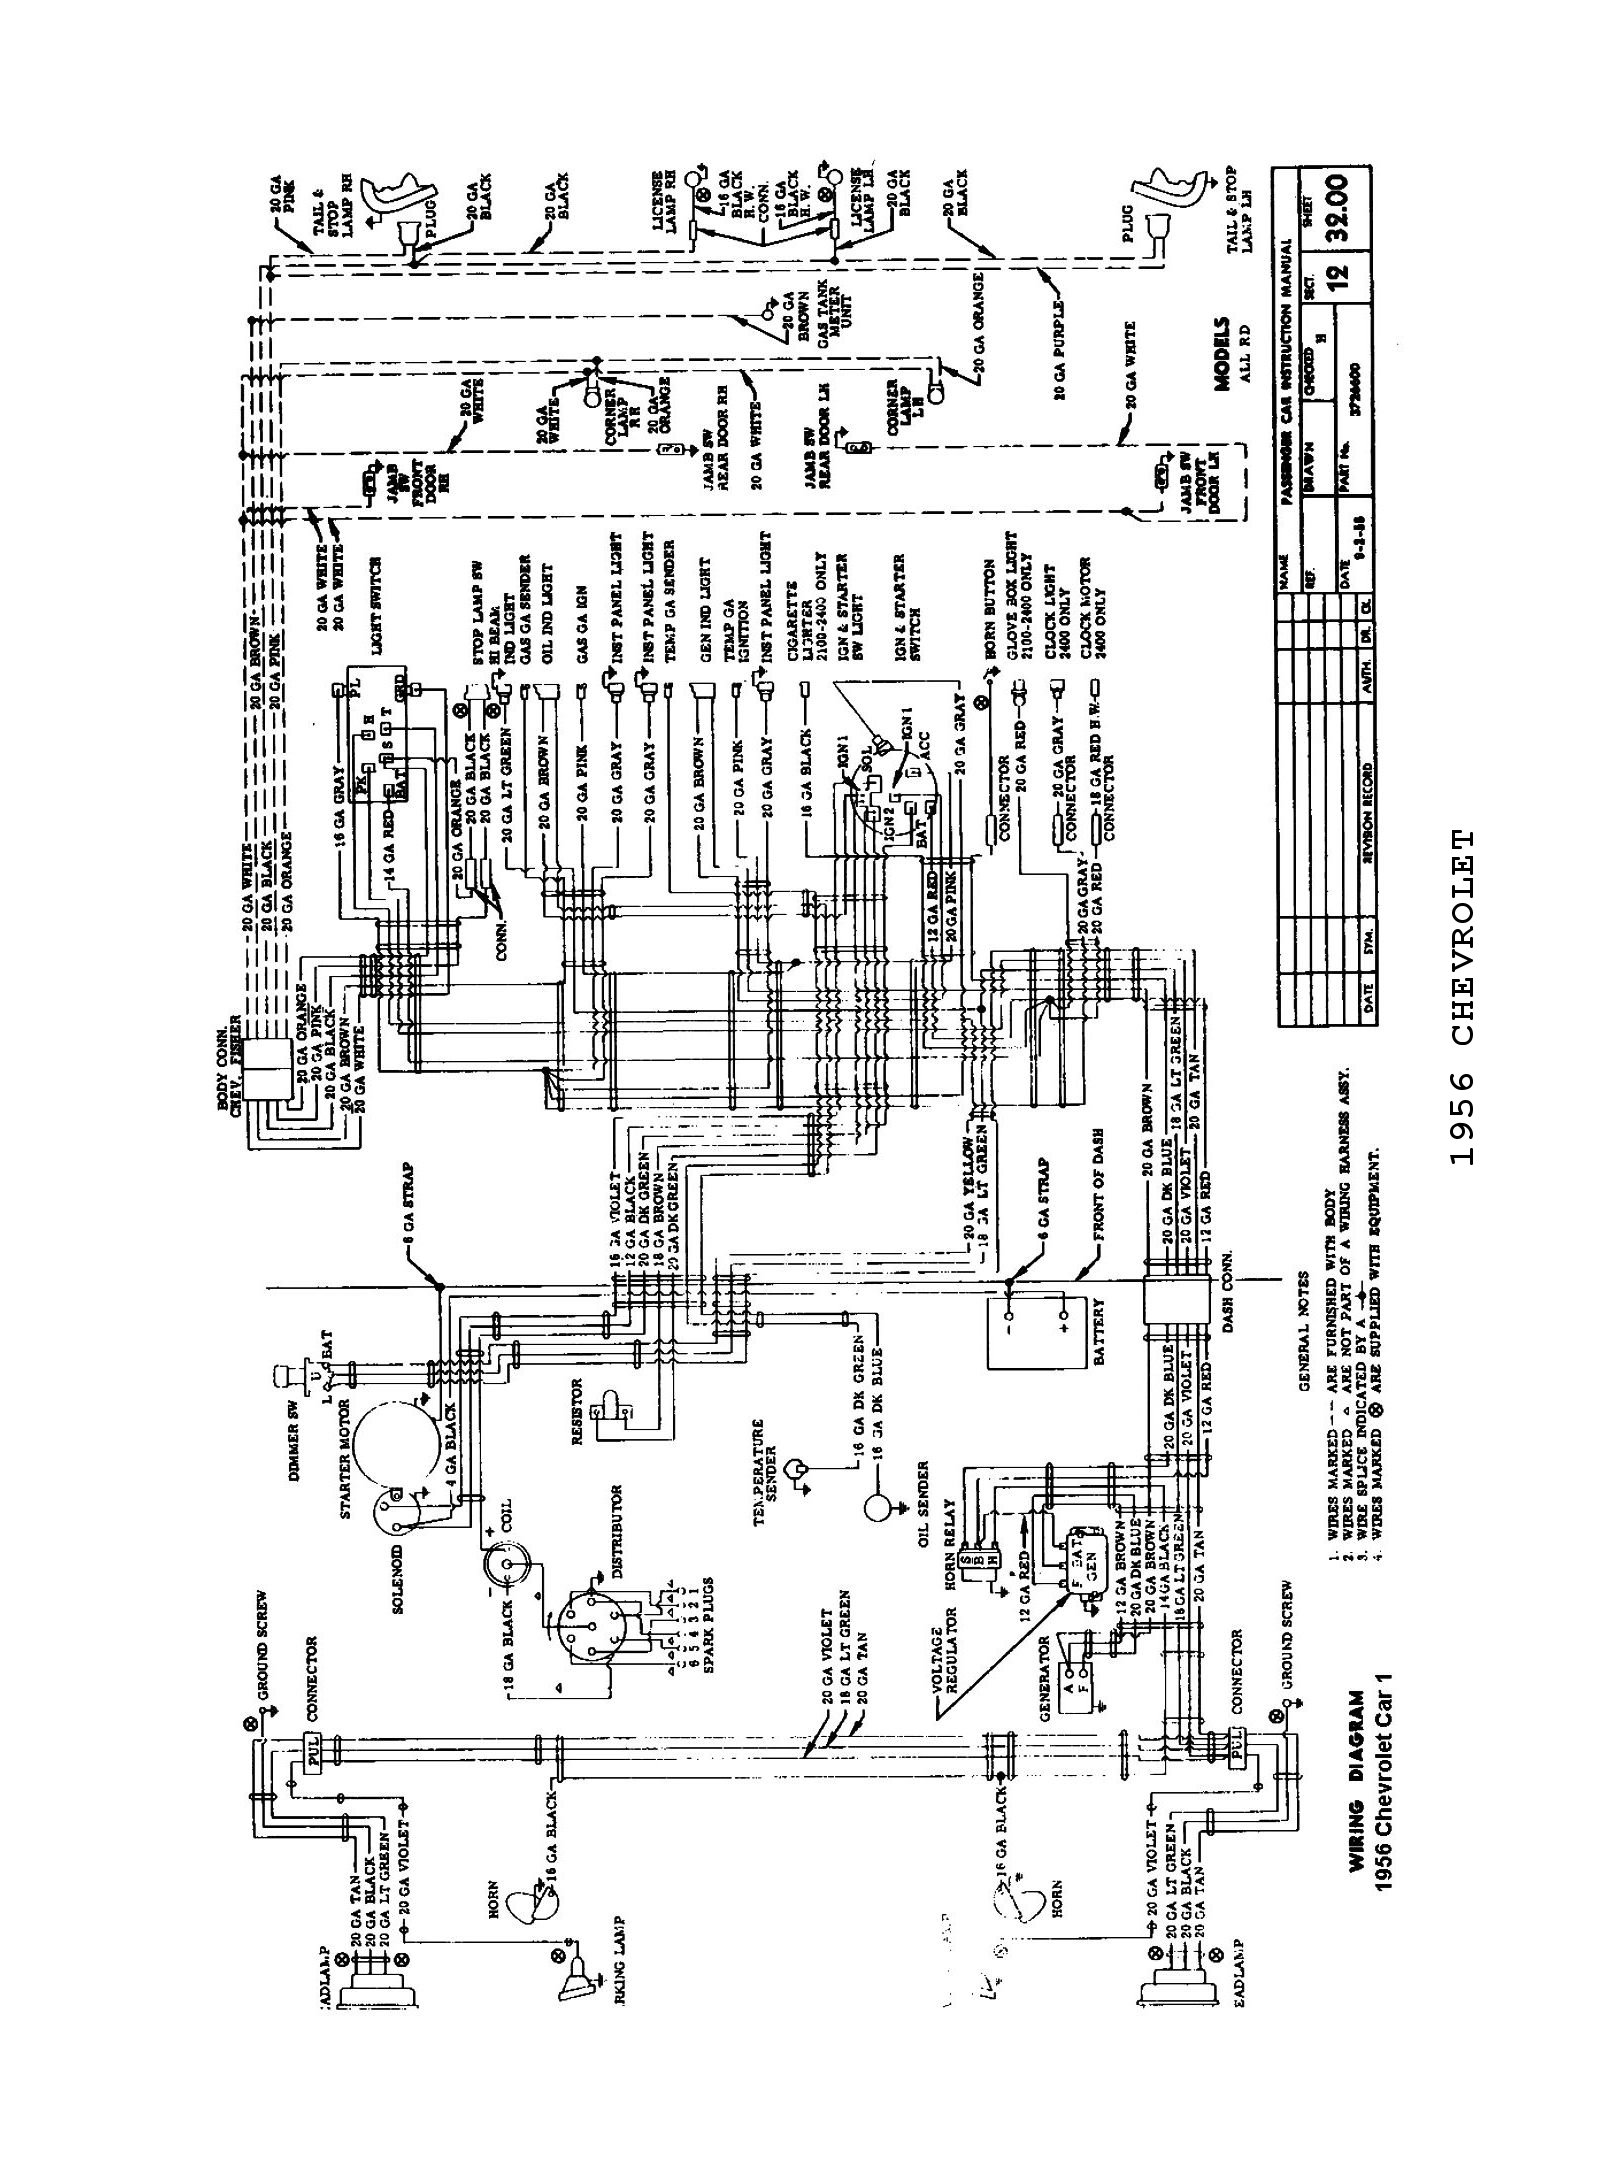 1956 Chevy Fuse Box Diagram | Wiring Diagram on chevy light switch wiring, chevy window switch wiring, chevy fuel pump relay wiring, chevy speaker wiring, chevy ignition coil wiring, chevy horn relay wiring, chevy steering column wiring, chevy starter wiring, chevy neutral safety switch wiring, chevy voltage regulator wiring, chevy headlight switch wiring, chevy fuel gauge wiring, chevy wiper motor wiring, chevy dome light wiring, chevy engine wiring,